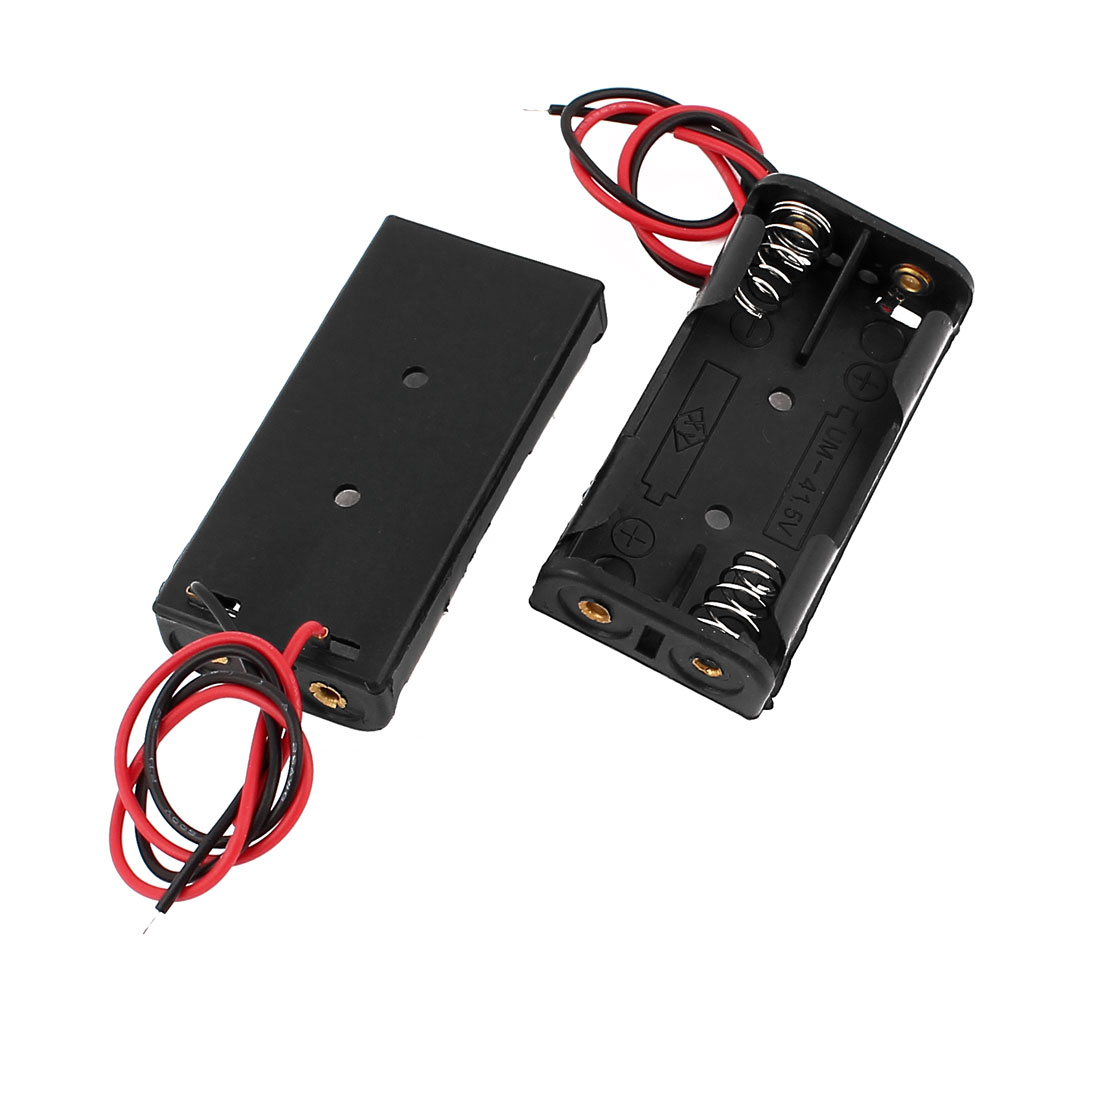 2Pcs Spring Loaded Black Plastic 2 x 1.5V AAA Battery Case Holder